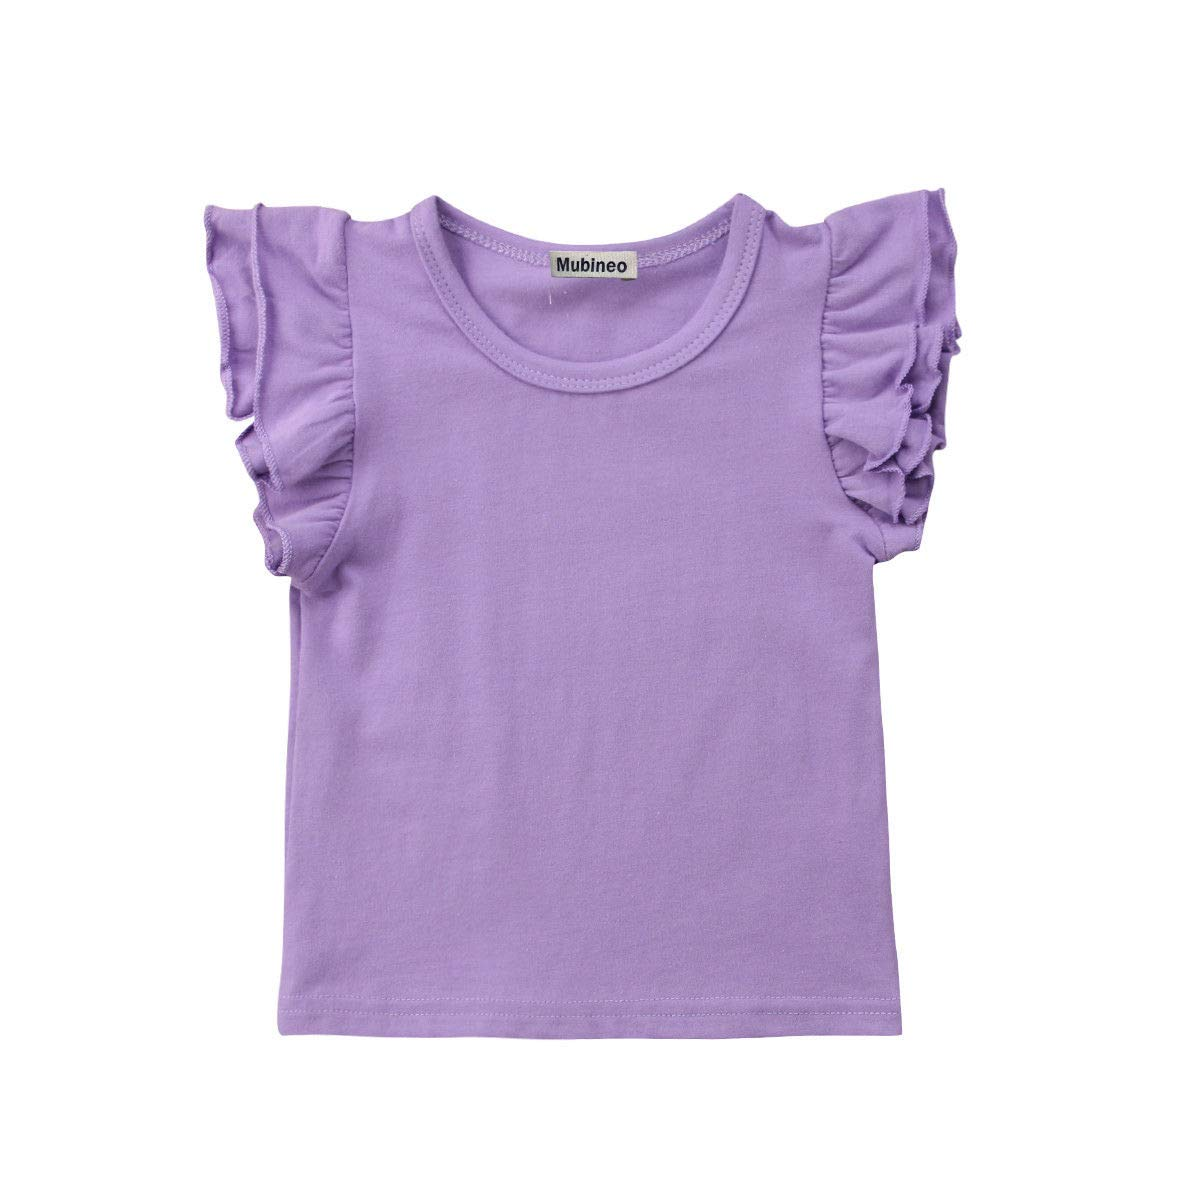 Toddler Baby Girl Basic Plain Ruffle Sleeve Cotton T Shirts Tops Tee Clothes (Purple, 2-3T)